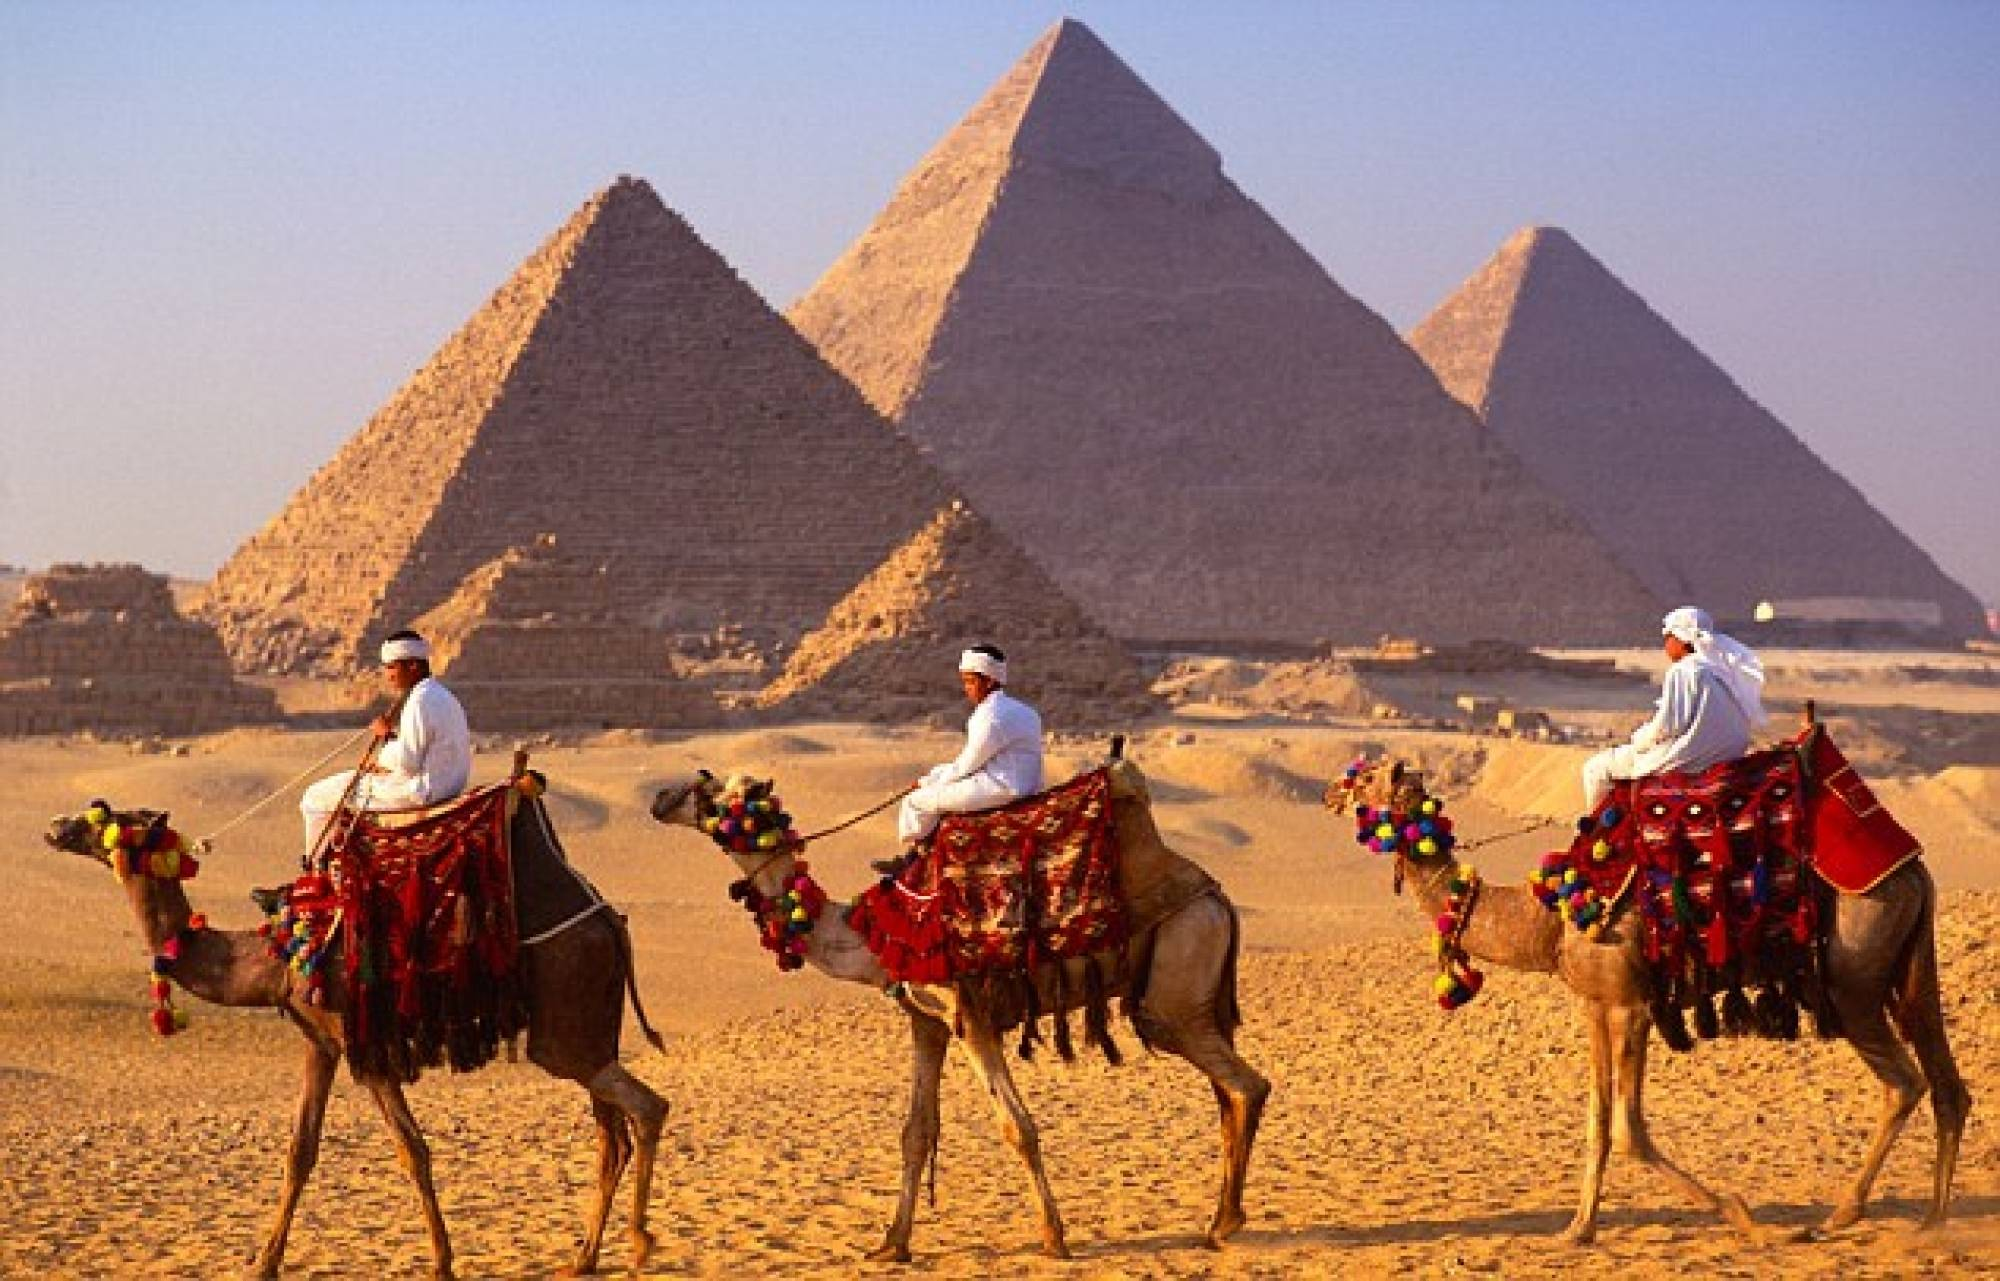 Giza Pyramids Tour with Camel Ride - Deluxe Travel Egypt